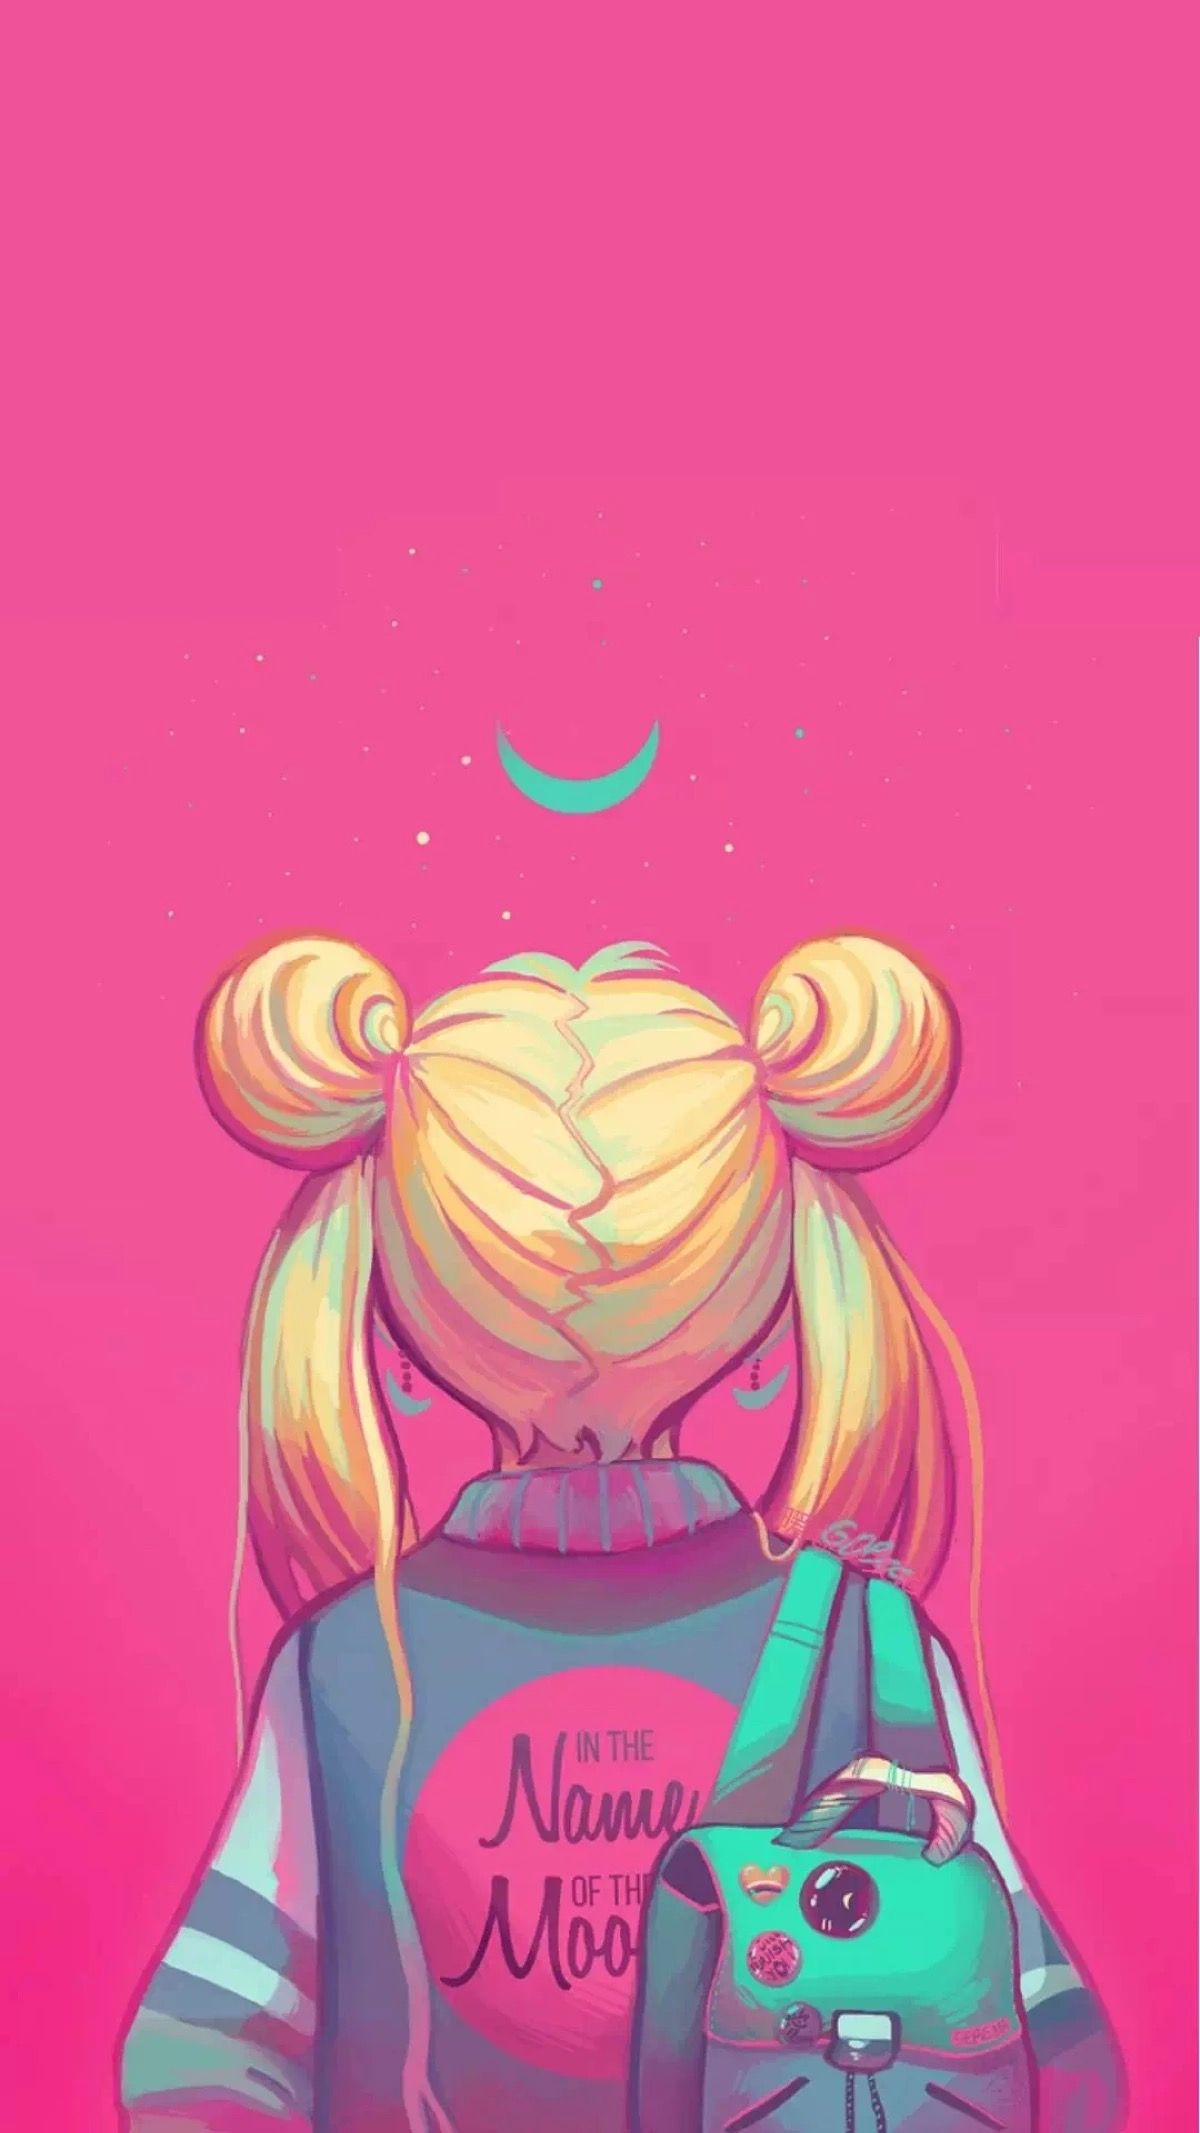 Sailor Moon painting, neon pink, in the name of the moon